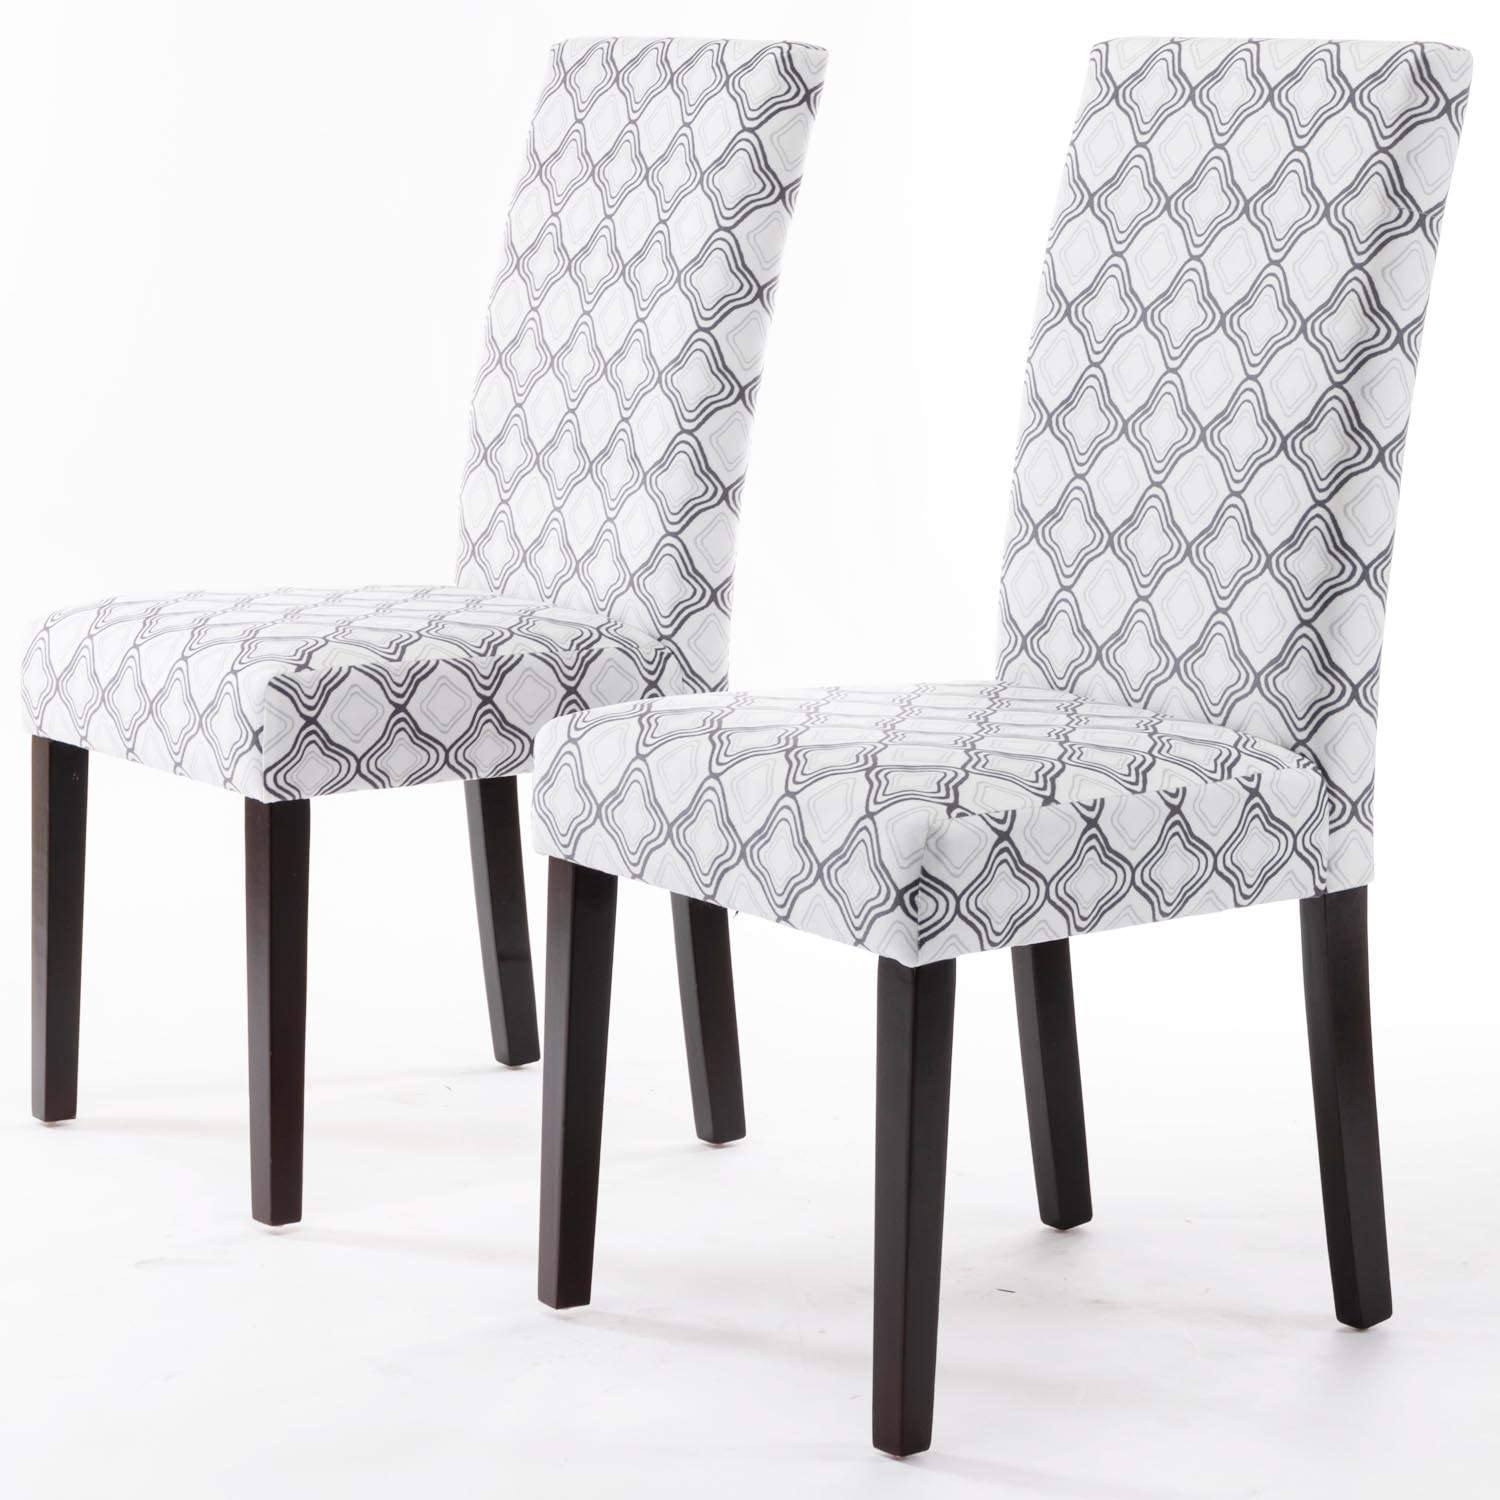 DininL Fur Dining Chair Kitchen Chairs Set of 2 Modern Dining Room Side Chairs Fabric Cushion Seat Back with Nailhead Trim (Geometry)